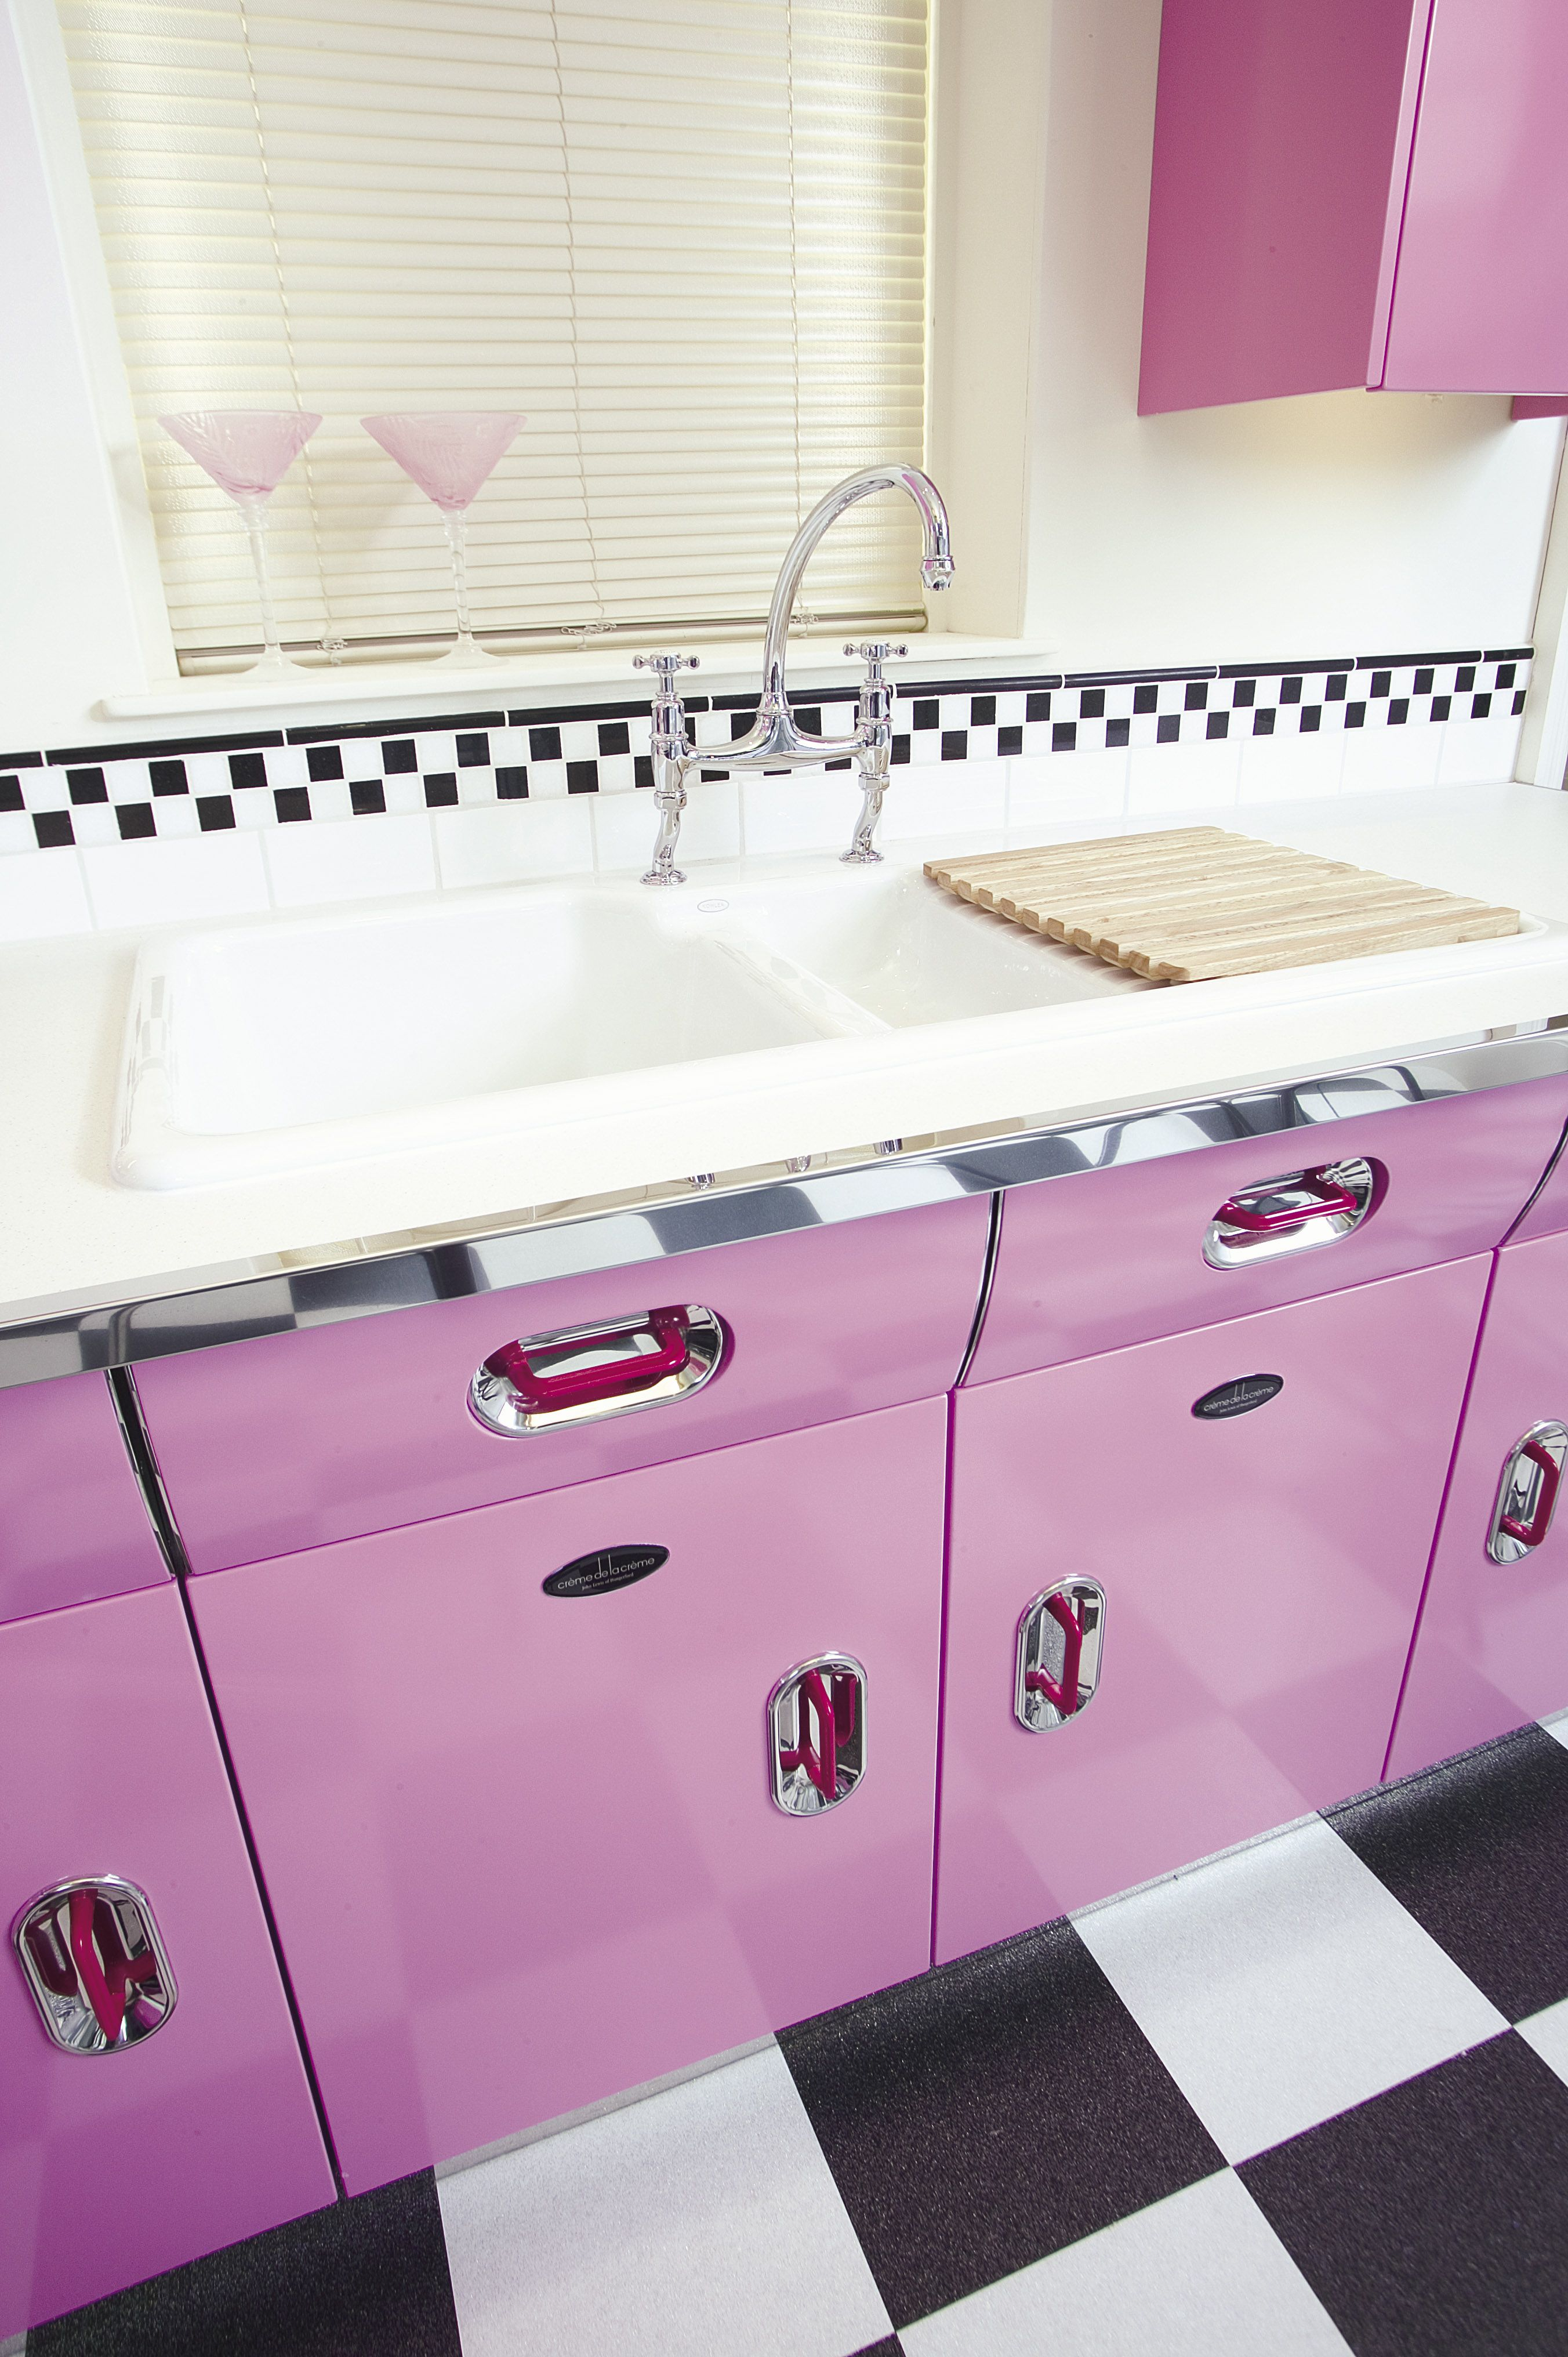 The 1950s Vintage English Rose Kitchen #kitchencollection